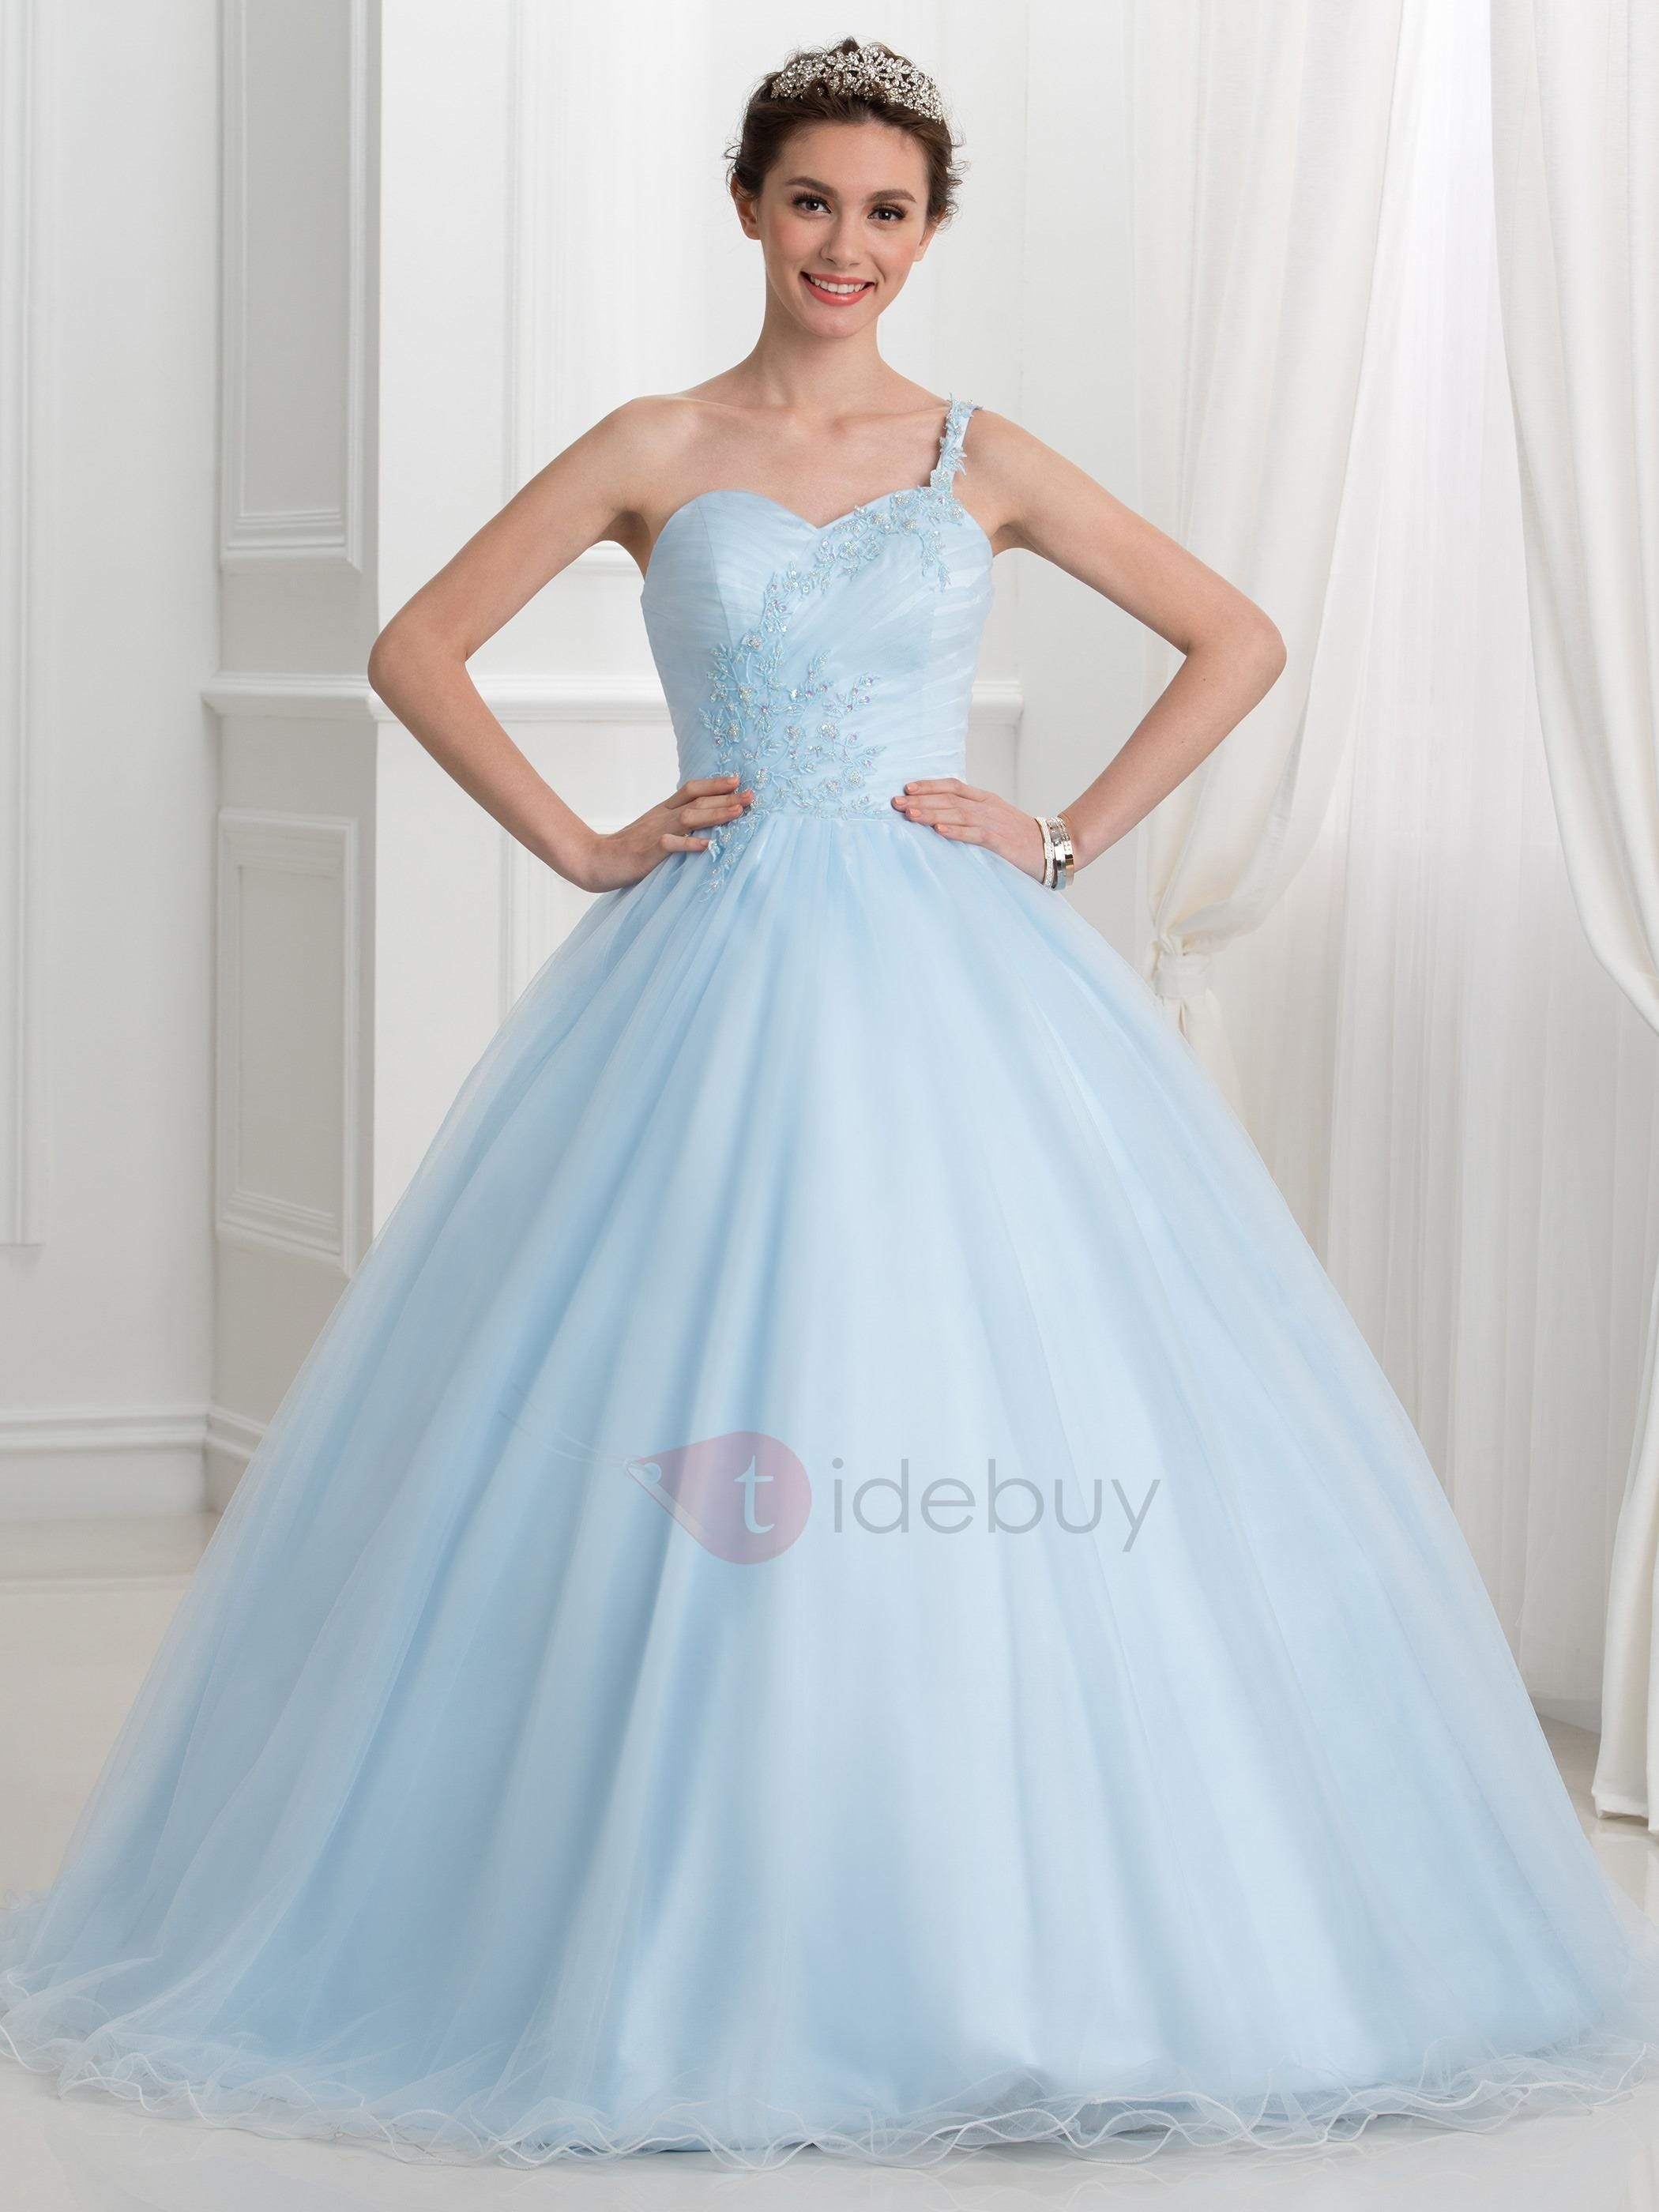 TideBuy - #TideBuy Fancy One Shoulder Appliques Beading Ball Gown ...